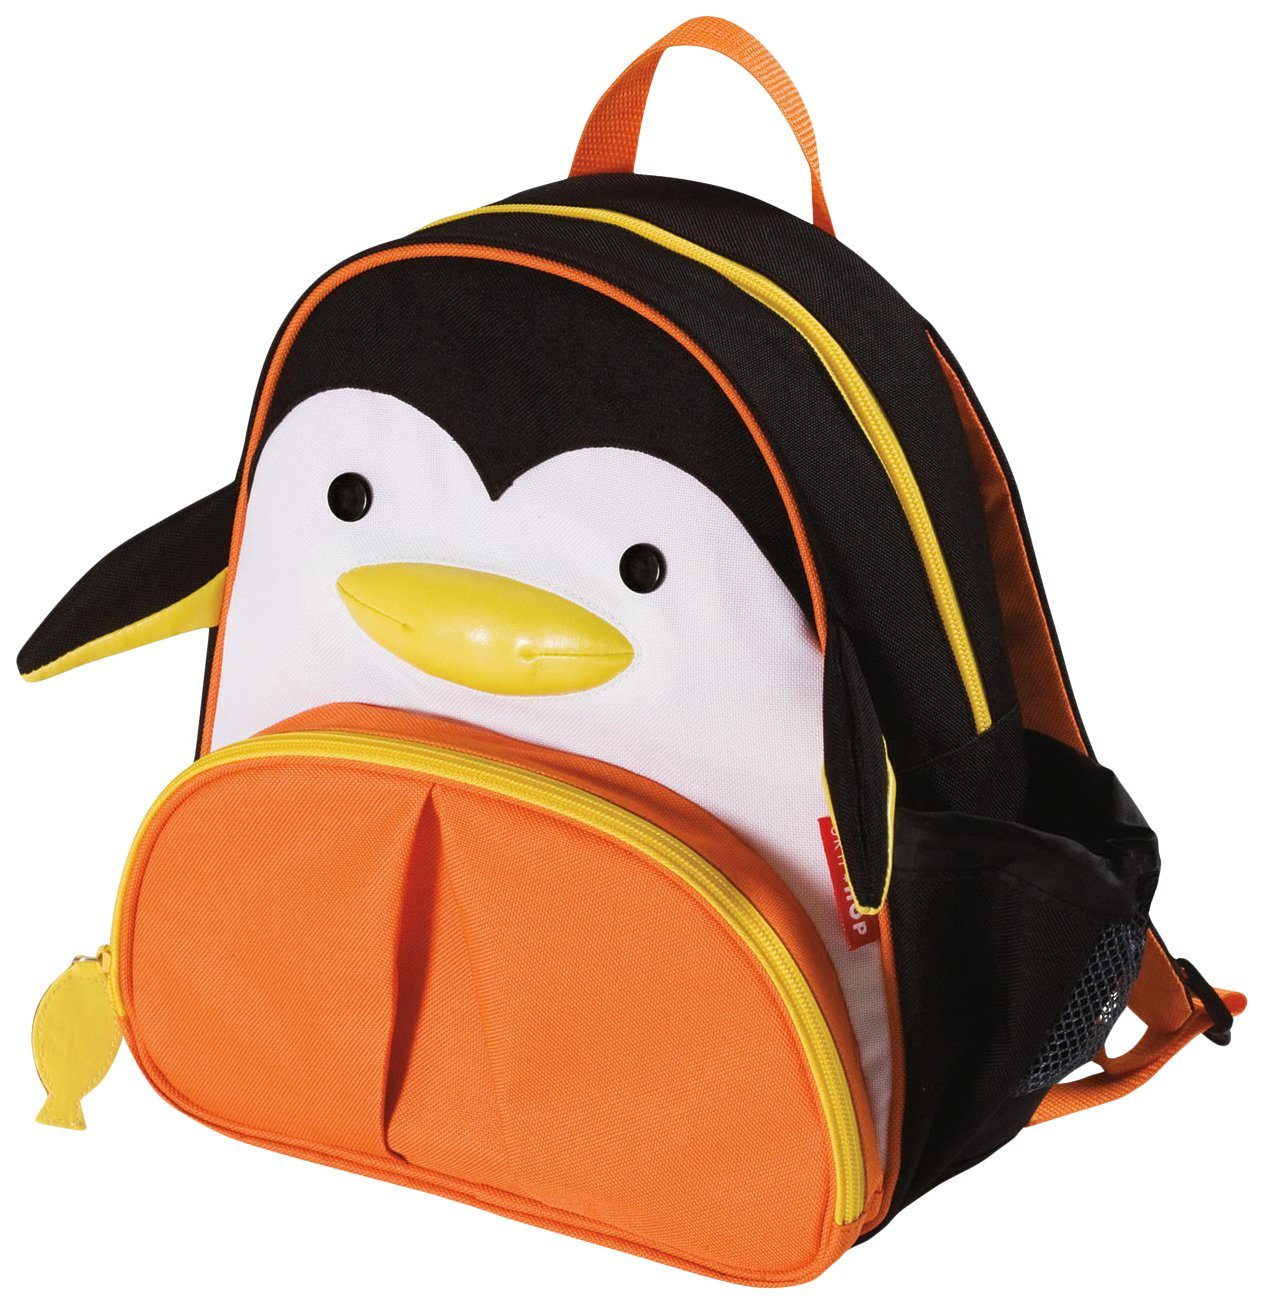 Skip Hop Zoo Toddler Kids Insulated Backpack Picasso Penguin, 12-inches, Multicolored by Skip Hop